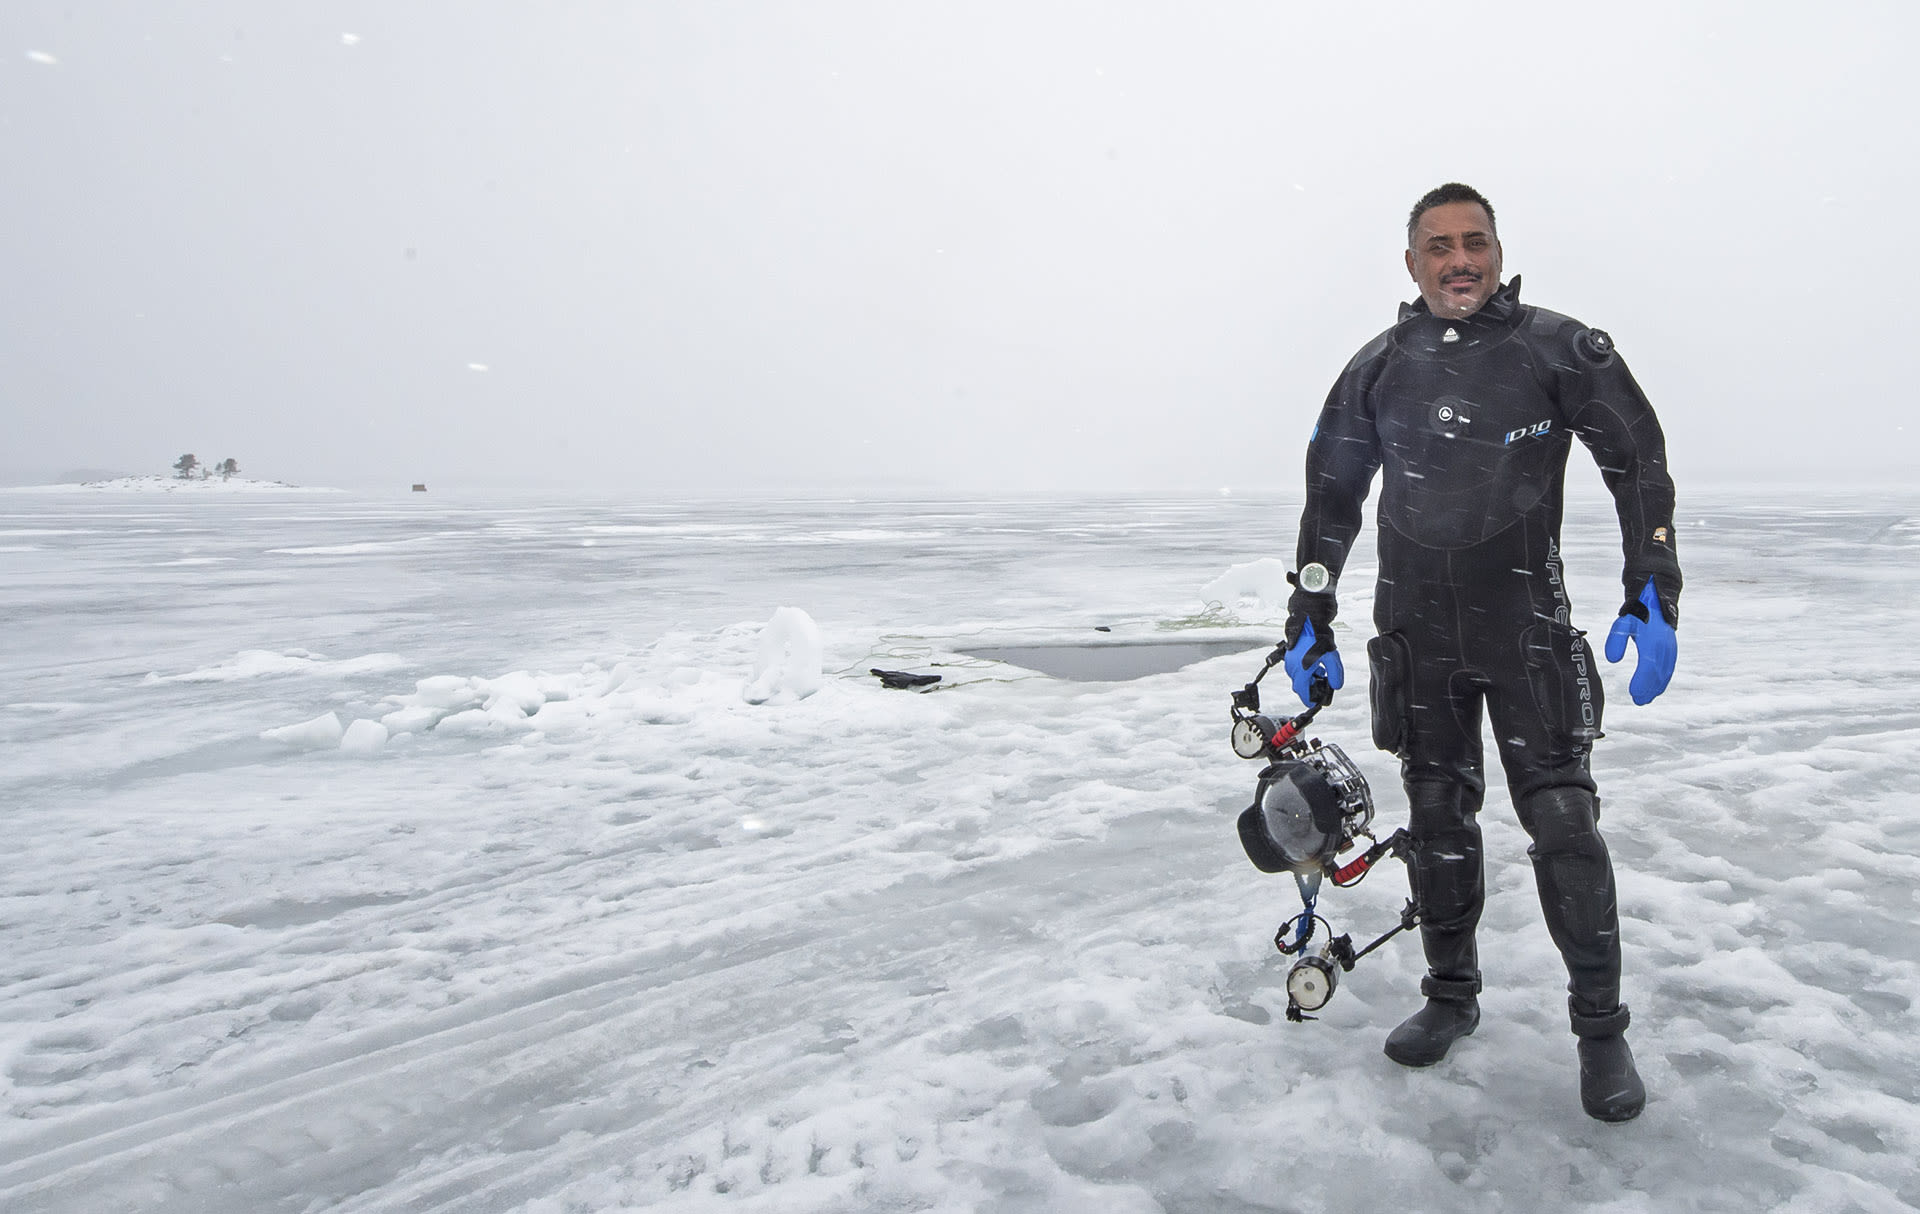 Dhritiman after a dive under the frozen White Sea in Arctic Russia